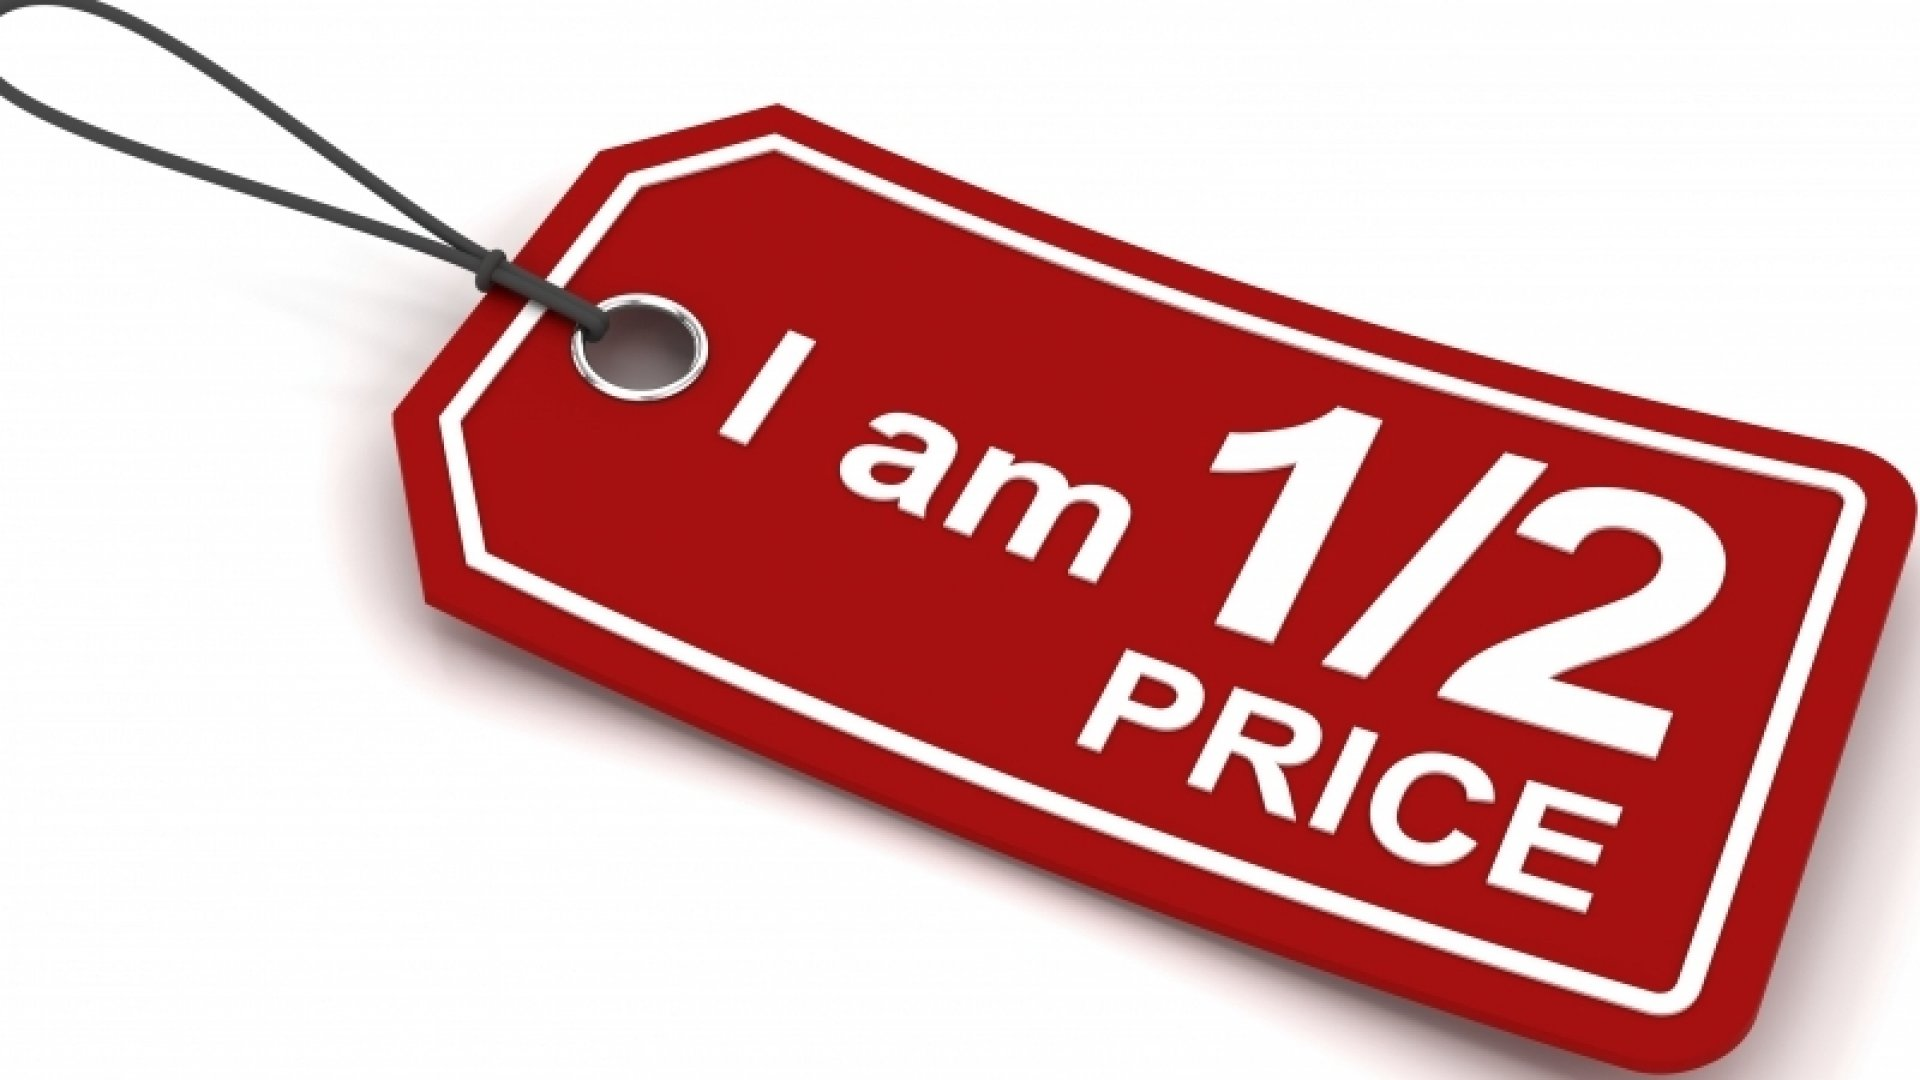 What Customers Want:  Half the Price or Twice as Good